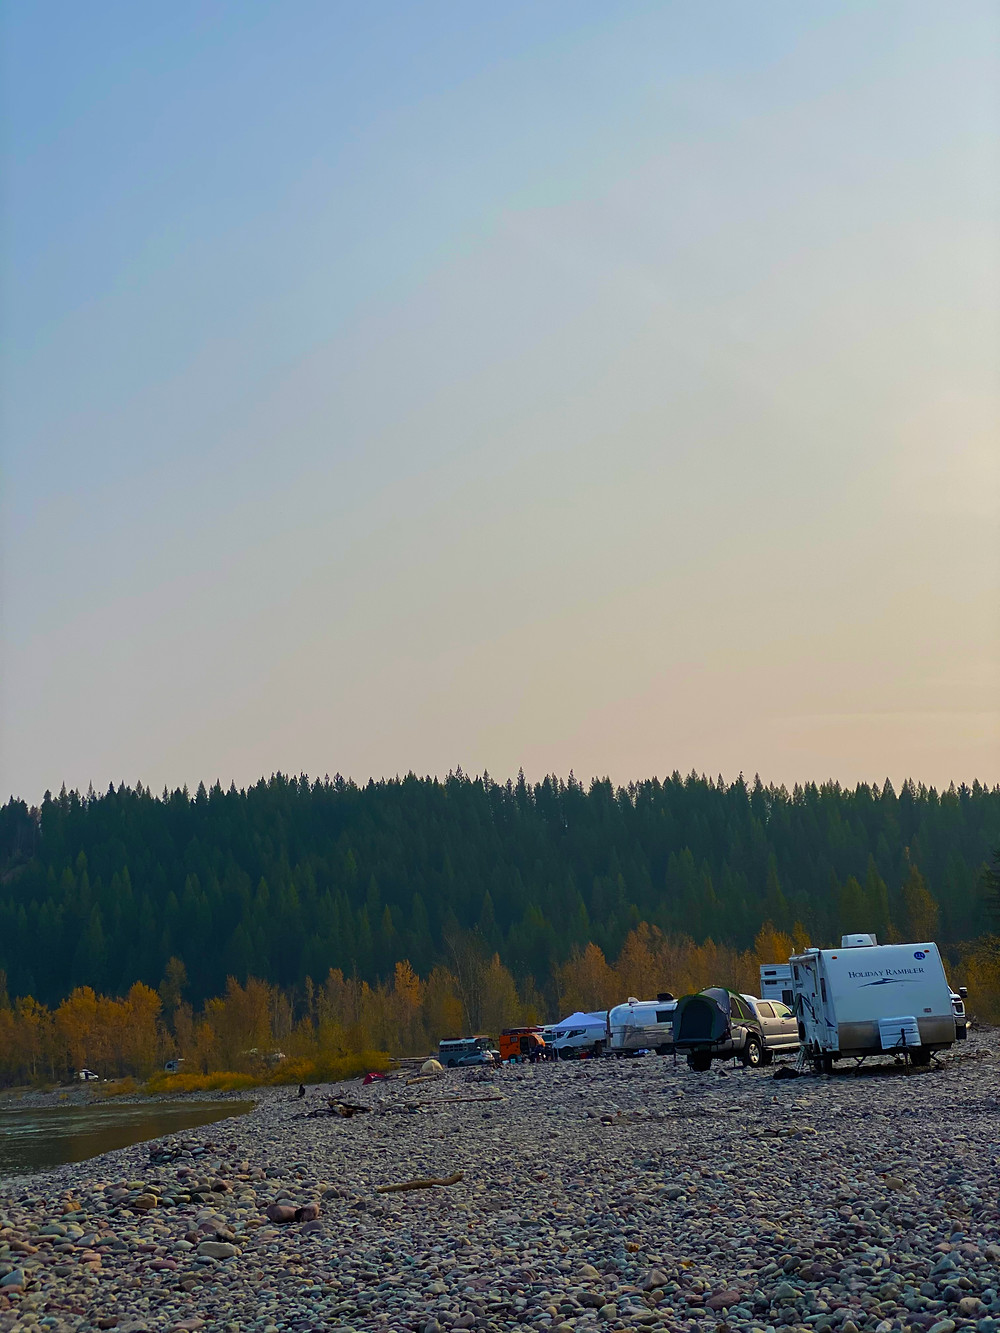 Vehicles boondocking, camping in Glacier Rim, Montana